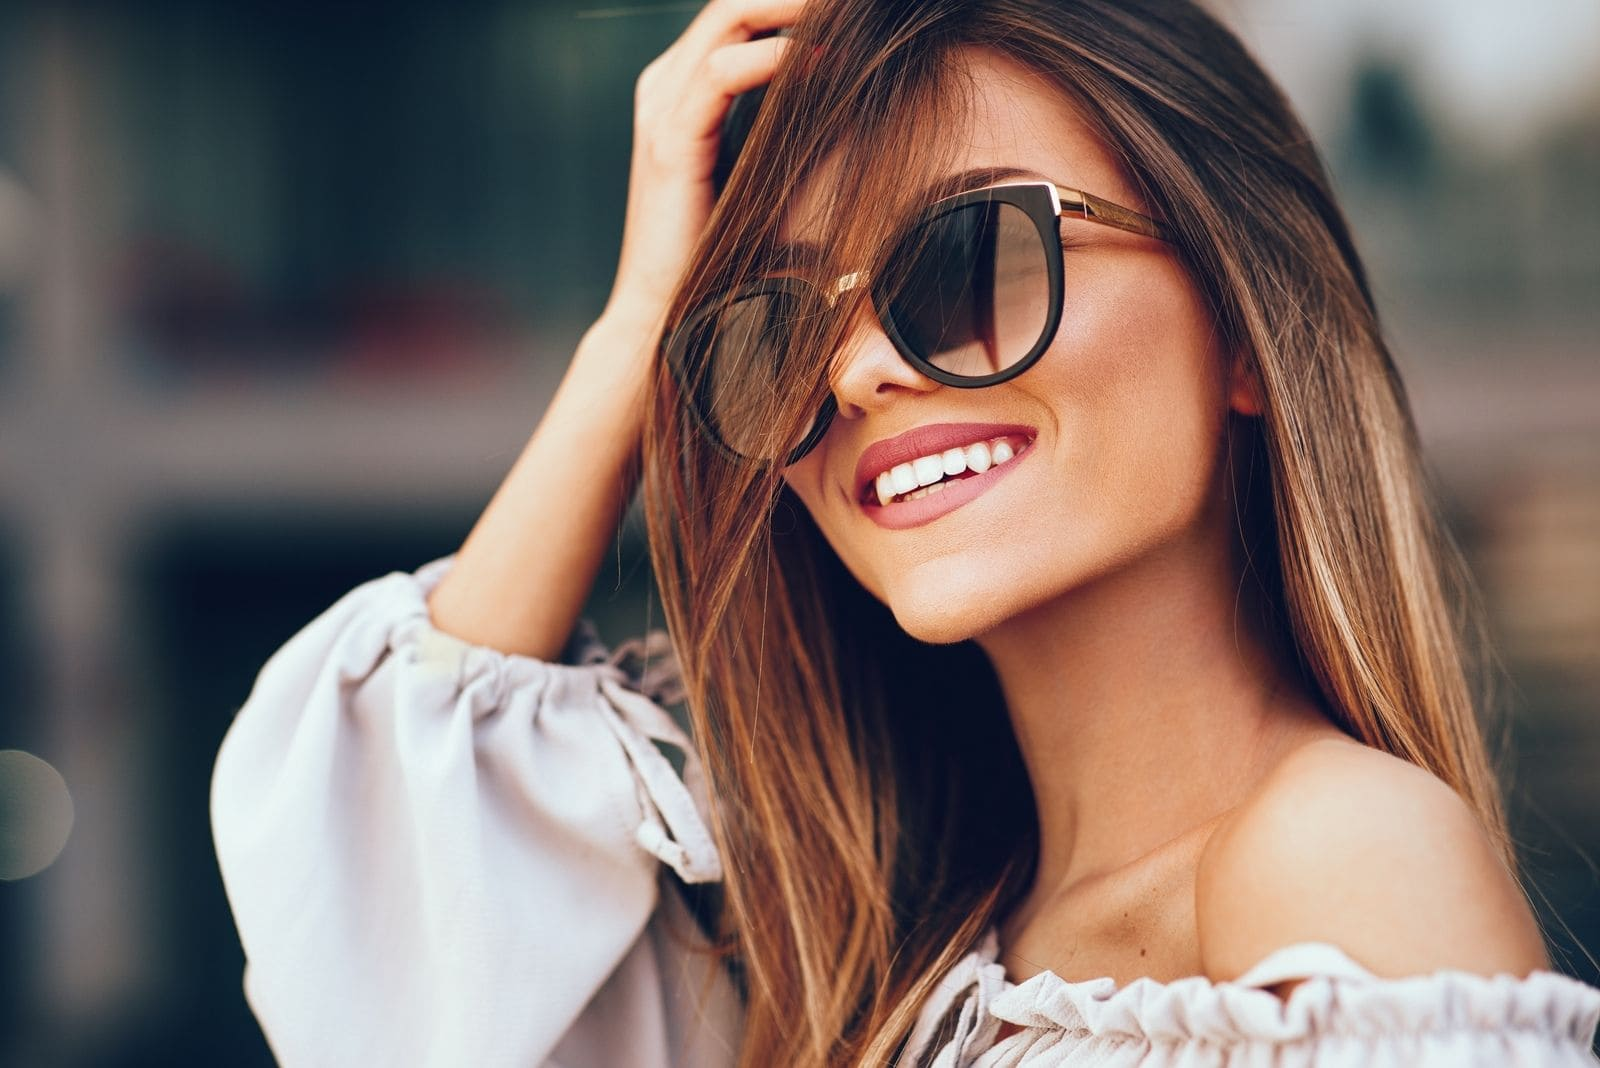 portrait of a beautiful woman smiling wearing a sunglass and holding her head